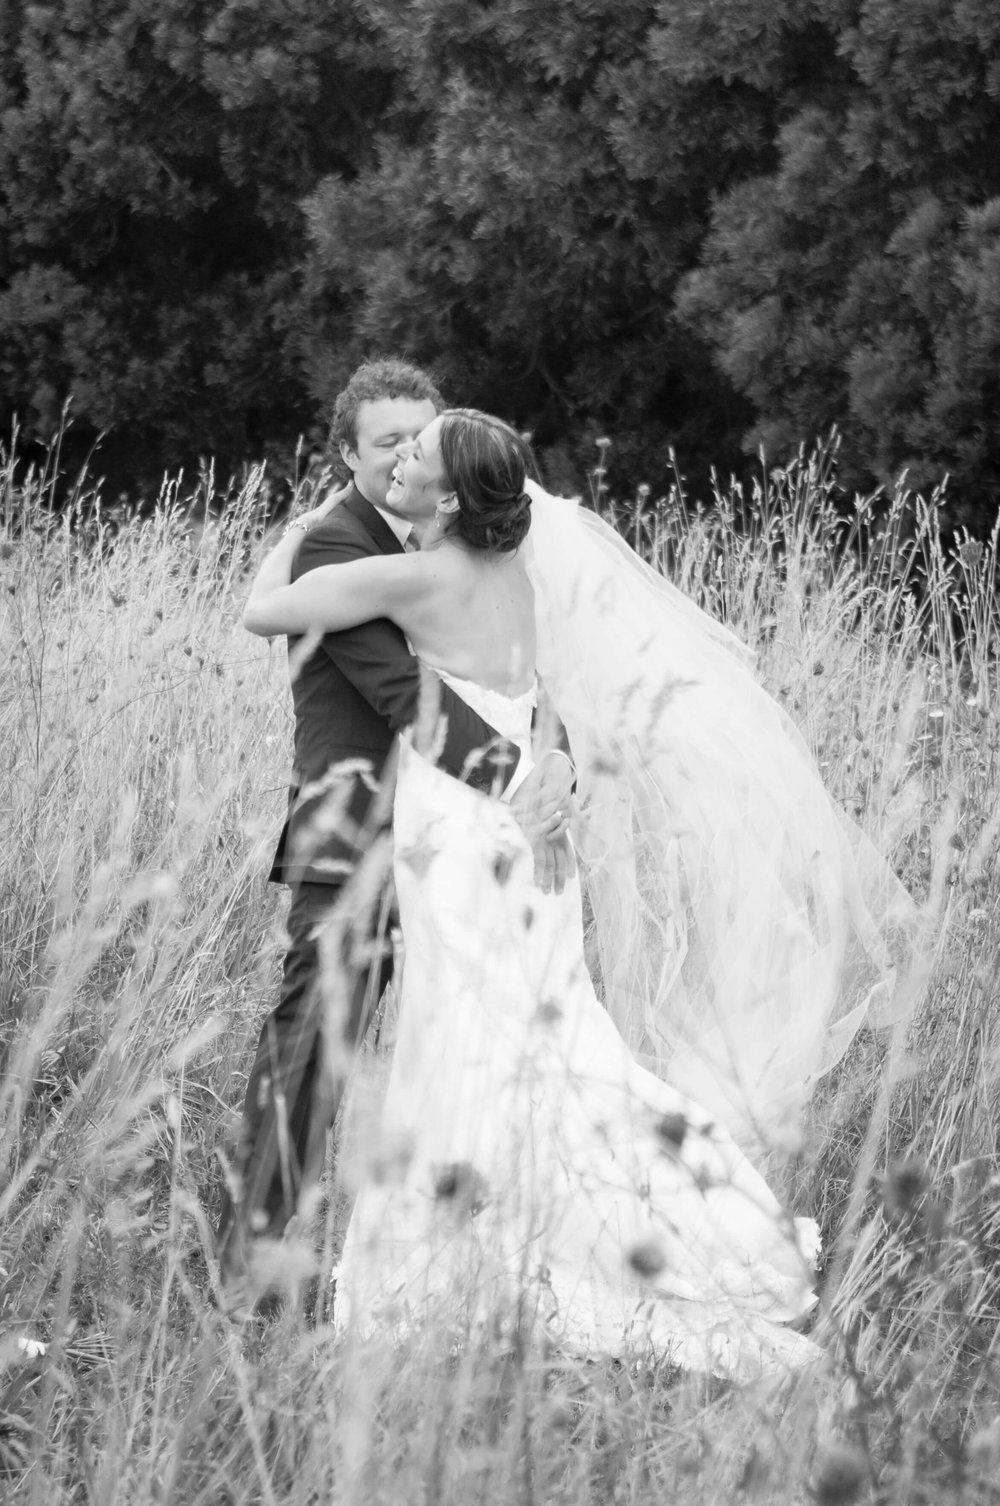 It was a beautiful moment photographing this couple share their joy in a great location